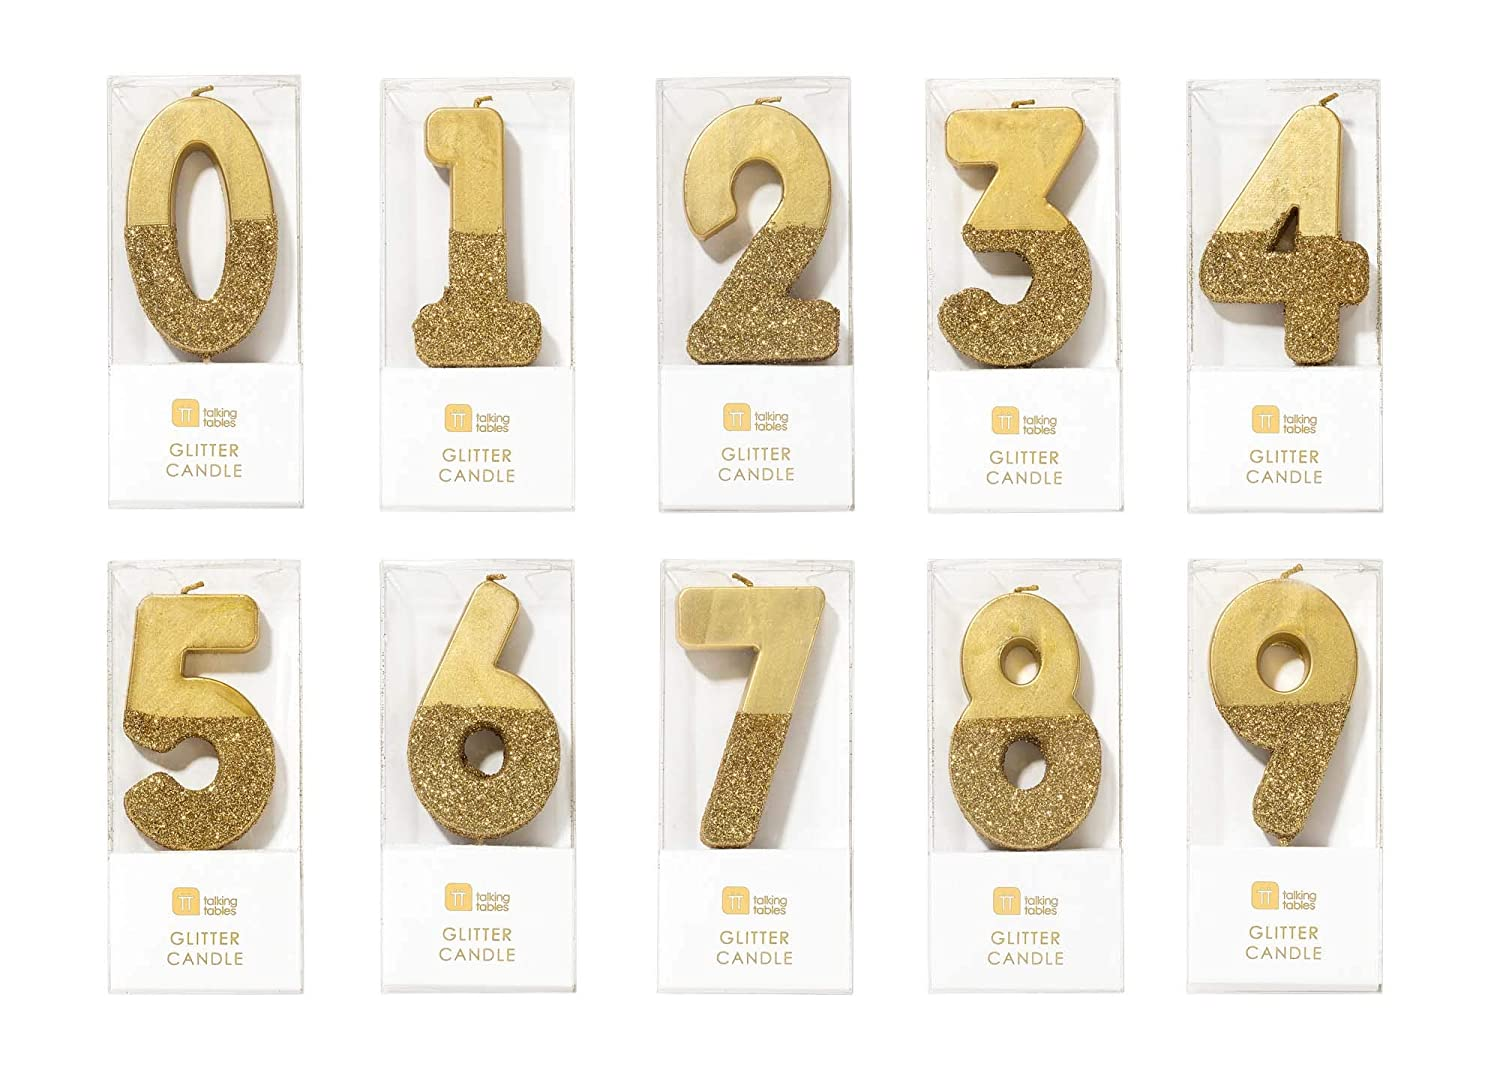 Talking Tables Bday HB 8 Wax Height 2cm Glitter Happy Birthday Candles Cake Topper Gold And Pastel colors 0.8